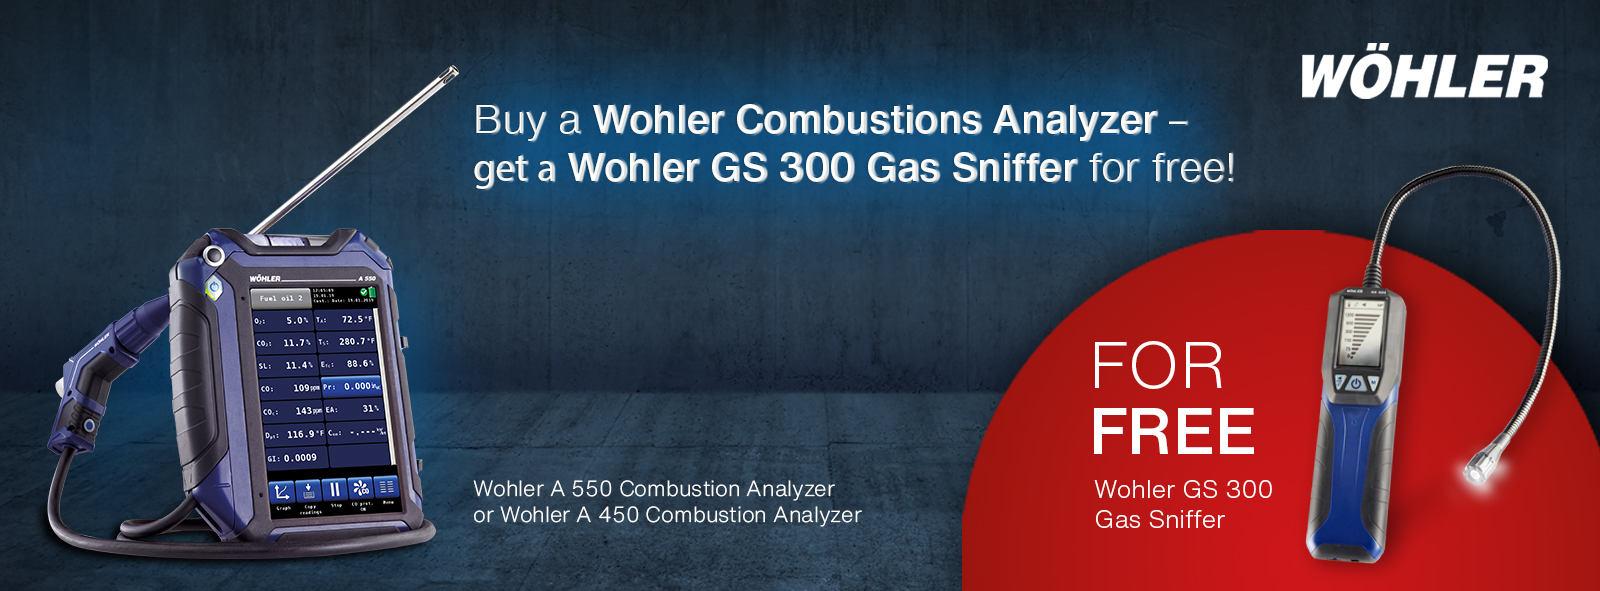 Wohler A 550 and A 450 Combustion Analyzers Promotion